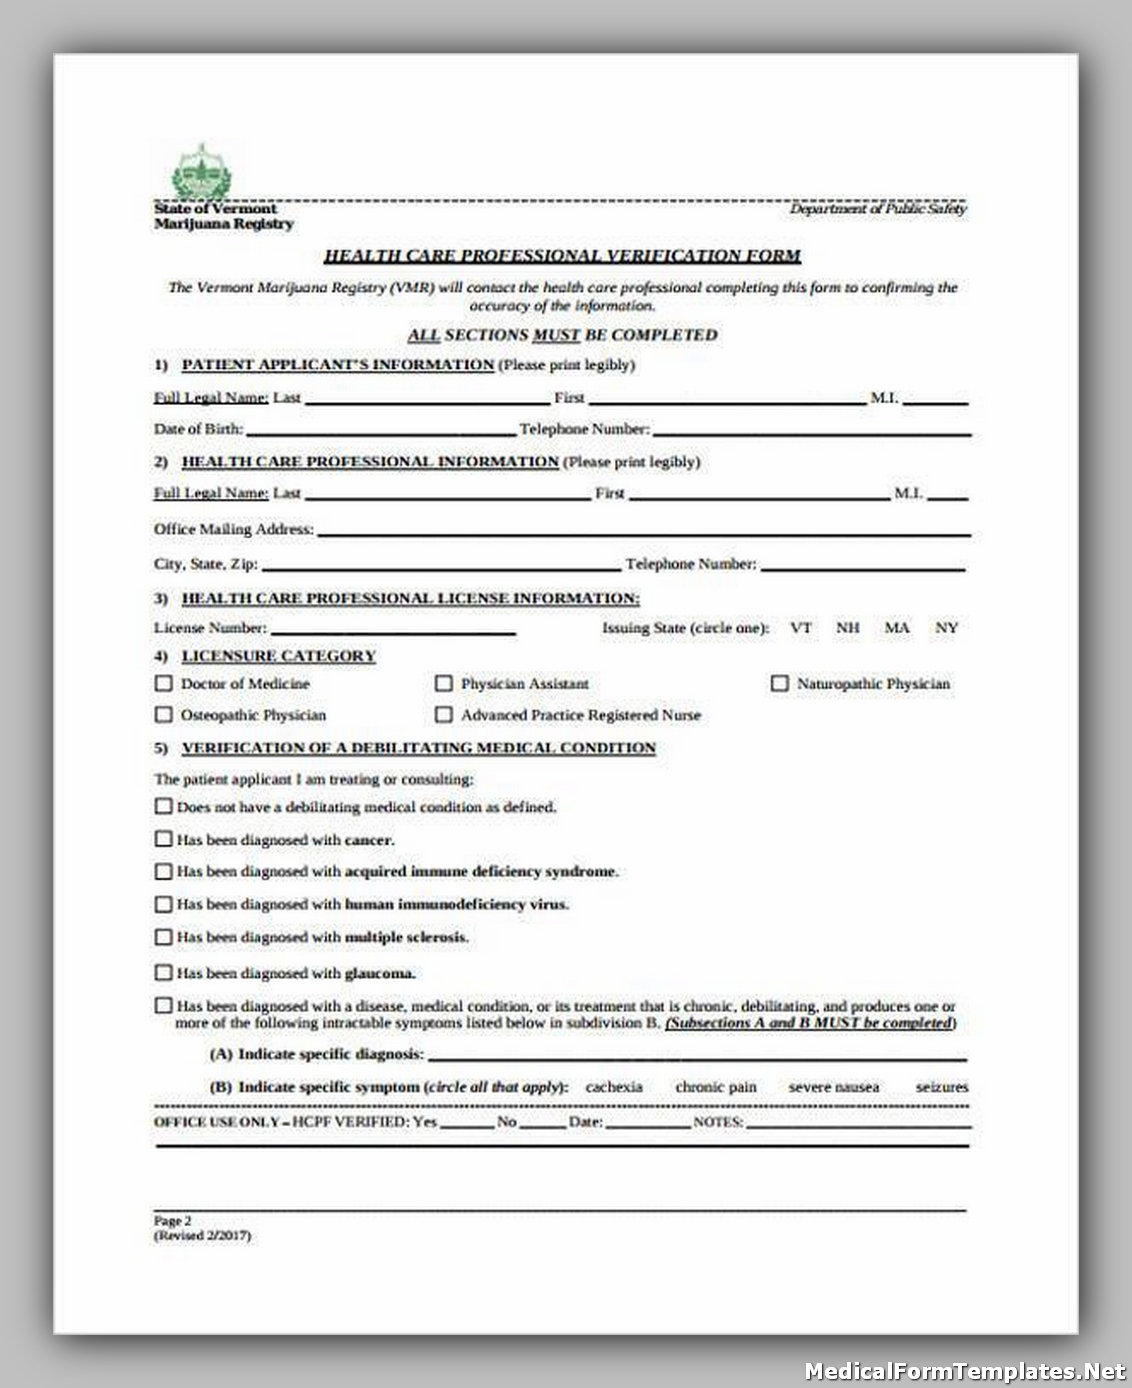 Healthcare Professional Verification Form